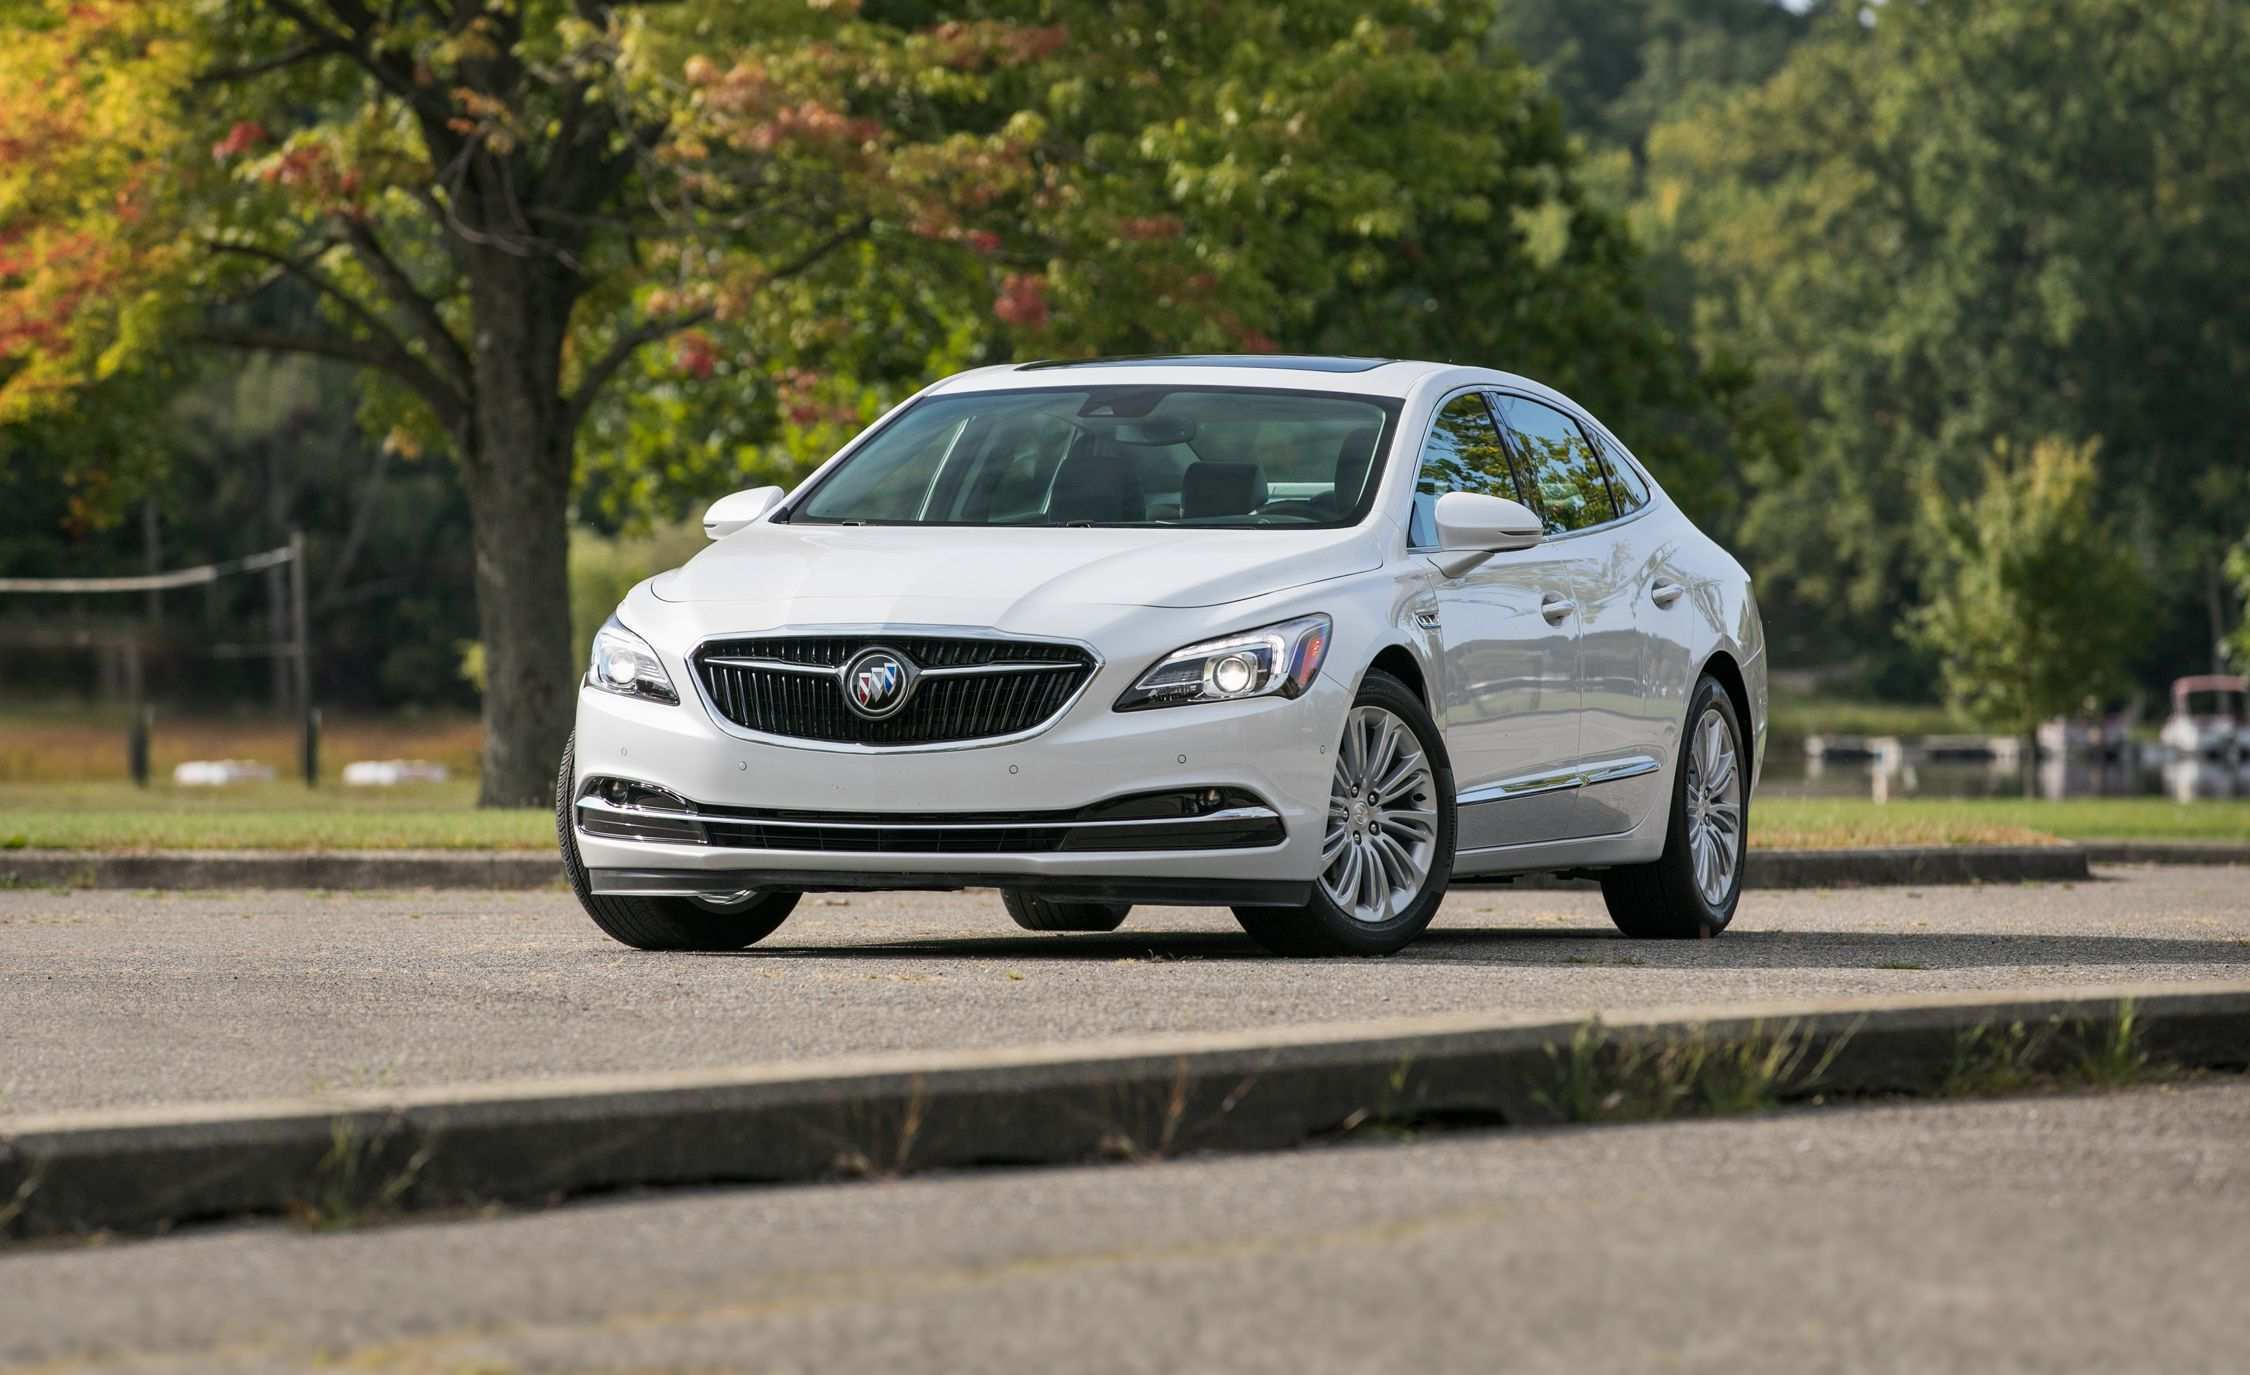 21 Gallery of New Buick Lacrosse 2019 Reviews Concept Redesign And Review Configurations by New Buick Lacrosse 2019 Reviews Concept Redesign And Review